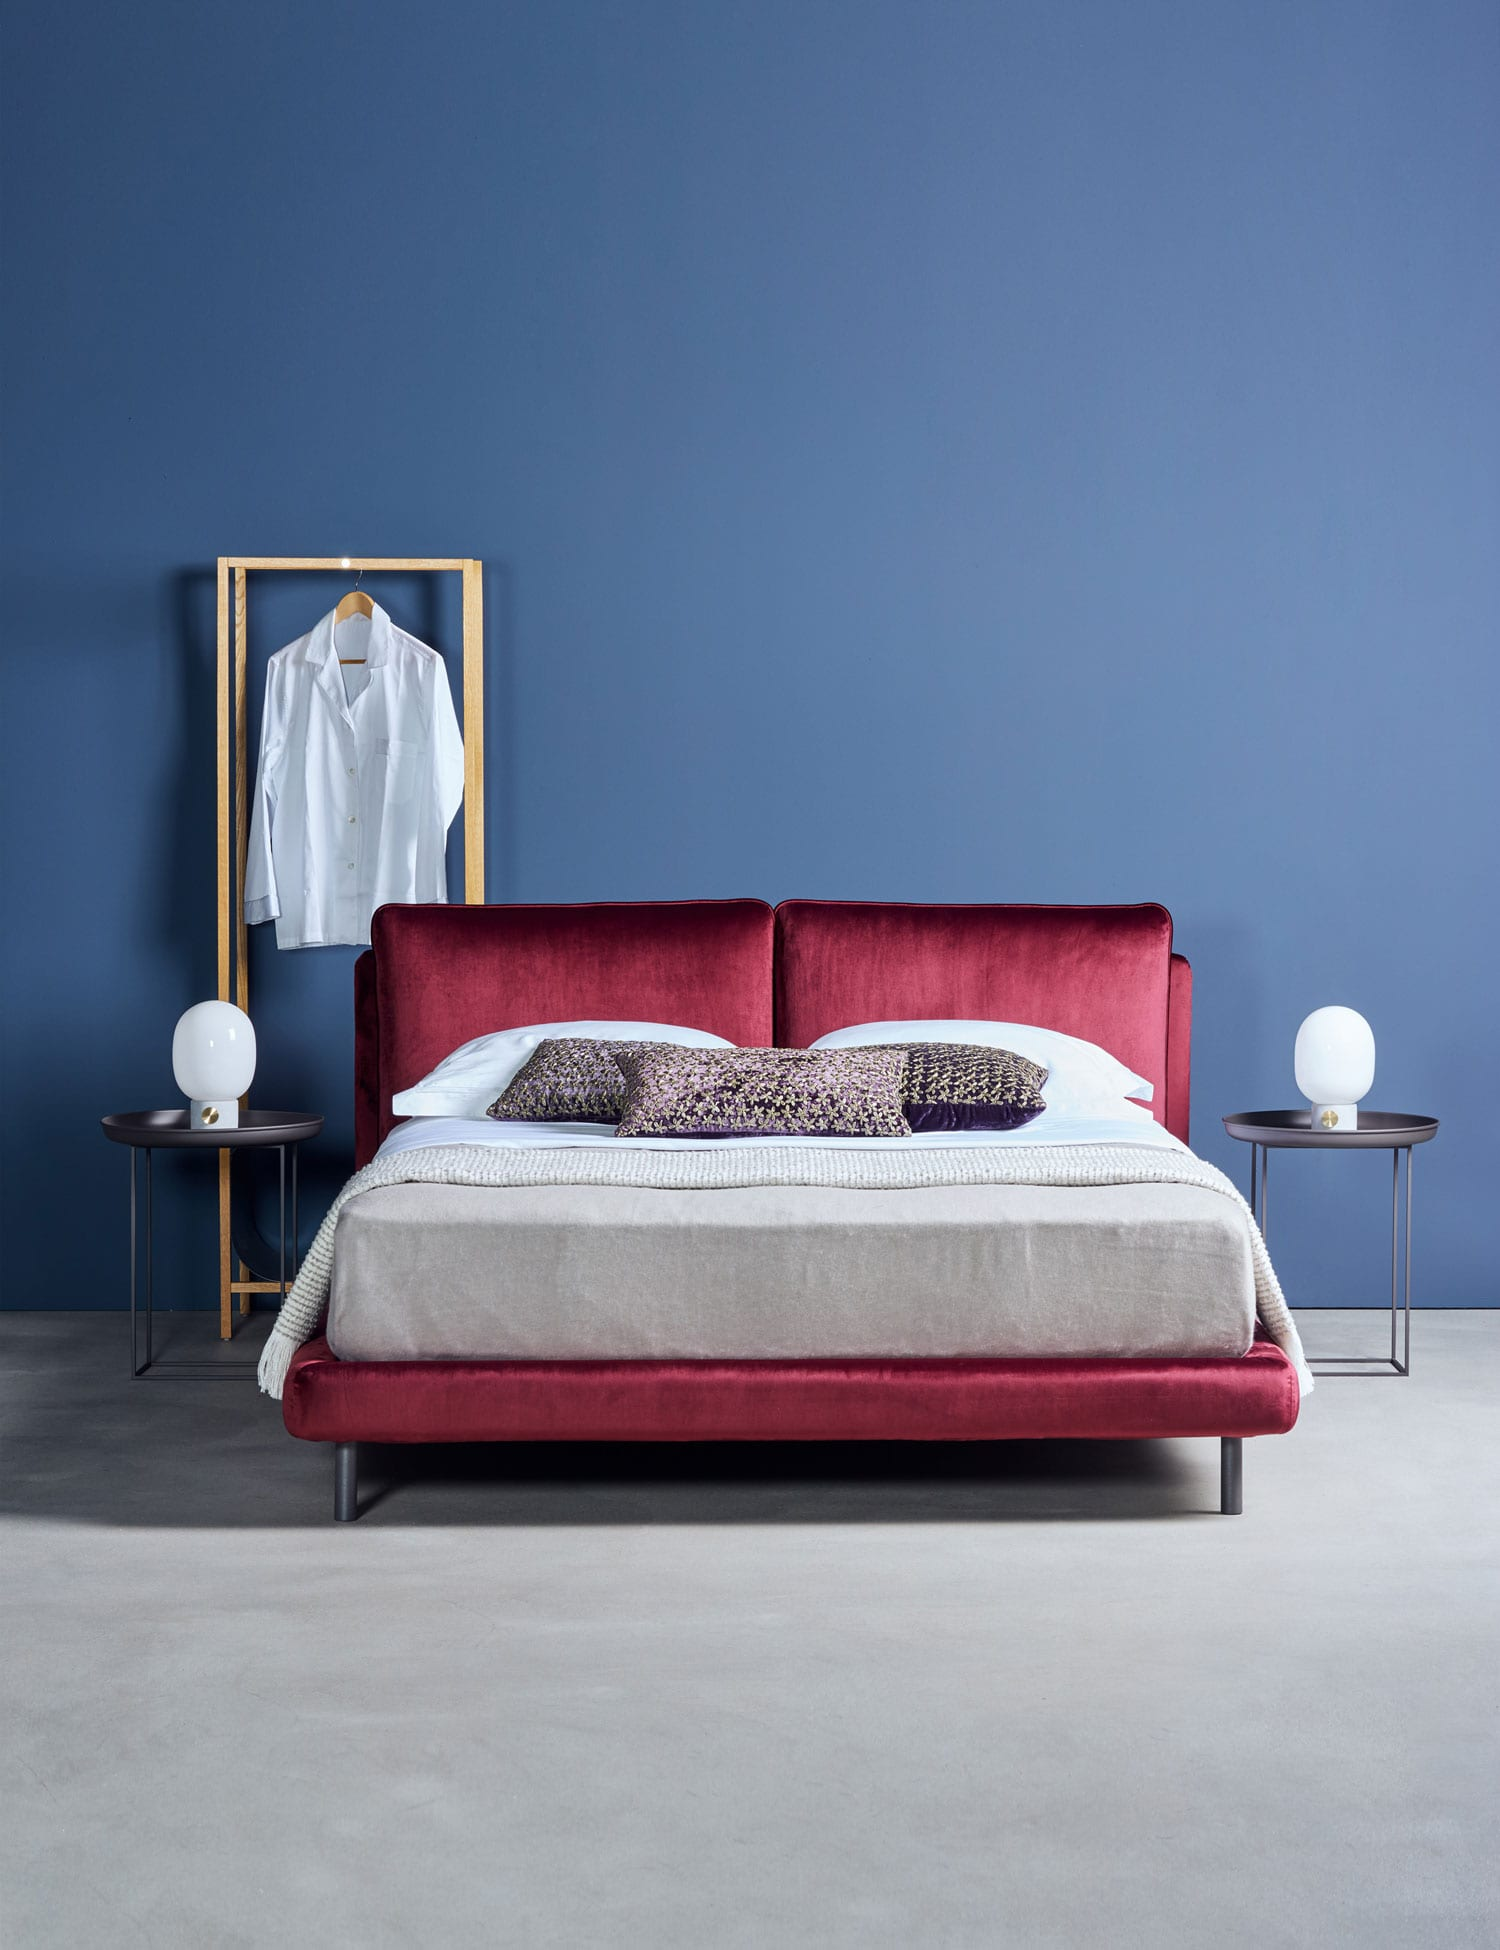 Ono Bed by Sebastian Herkner for Schramm Werkstatten at IMM Cologne 2018 | Yellowtrace